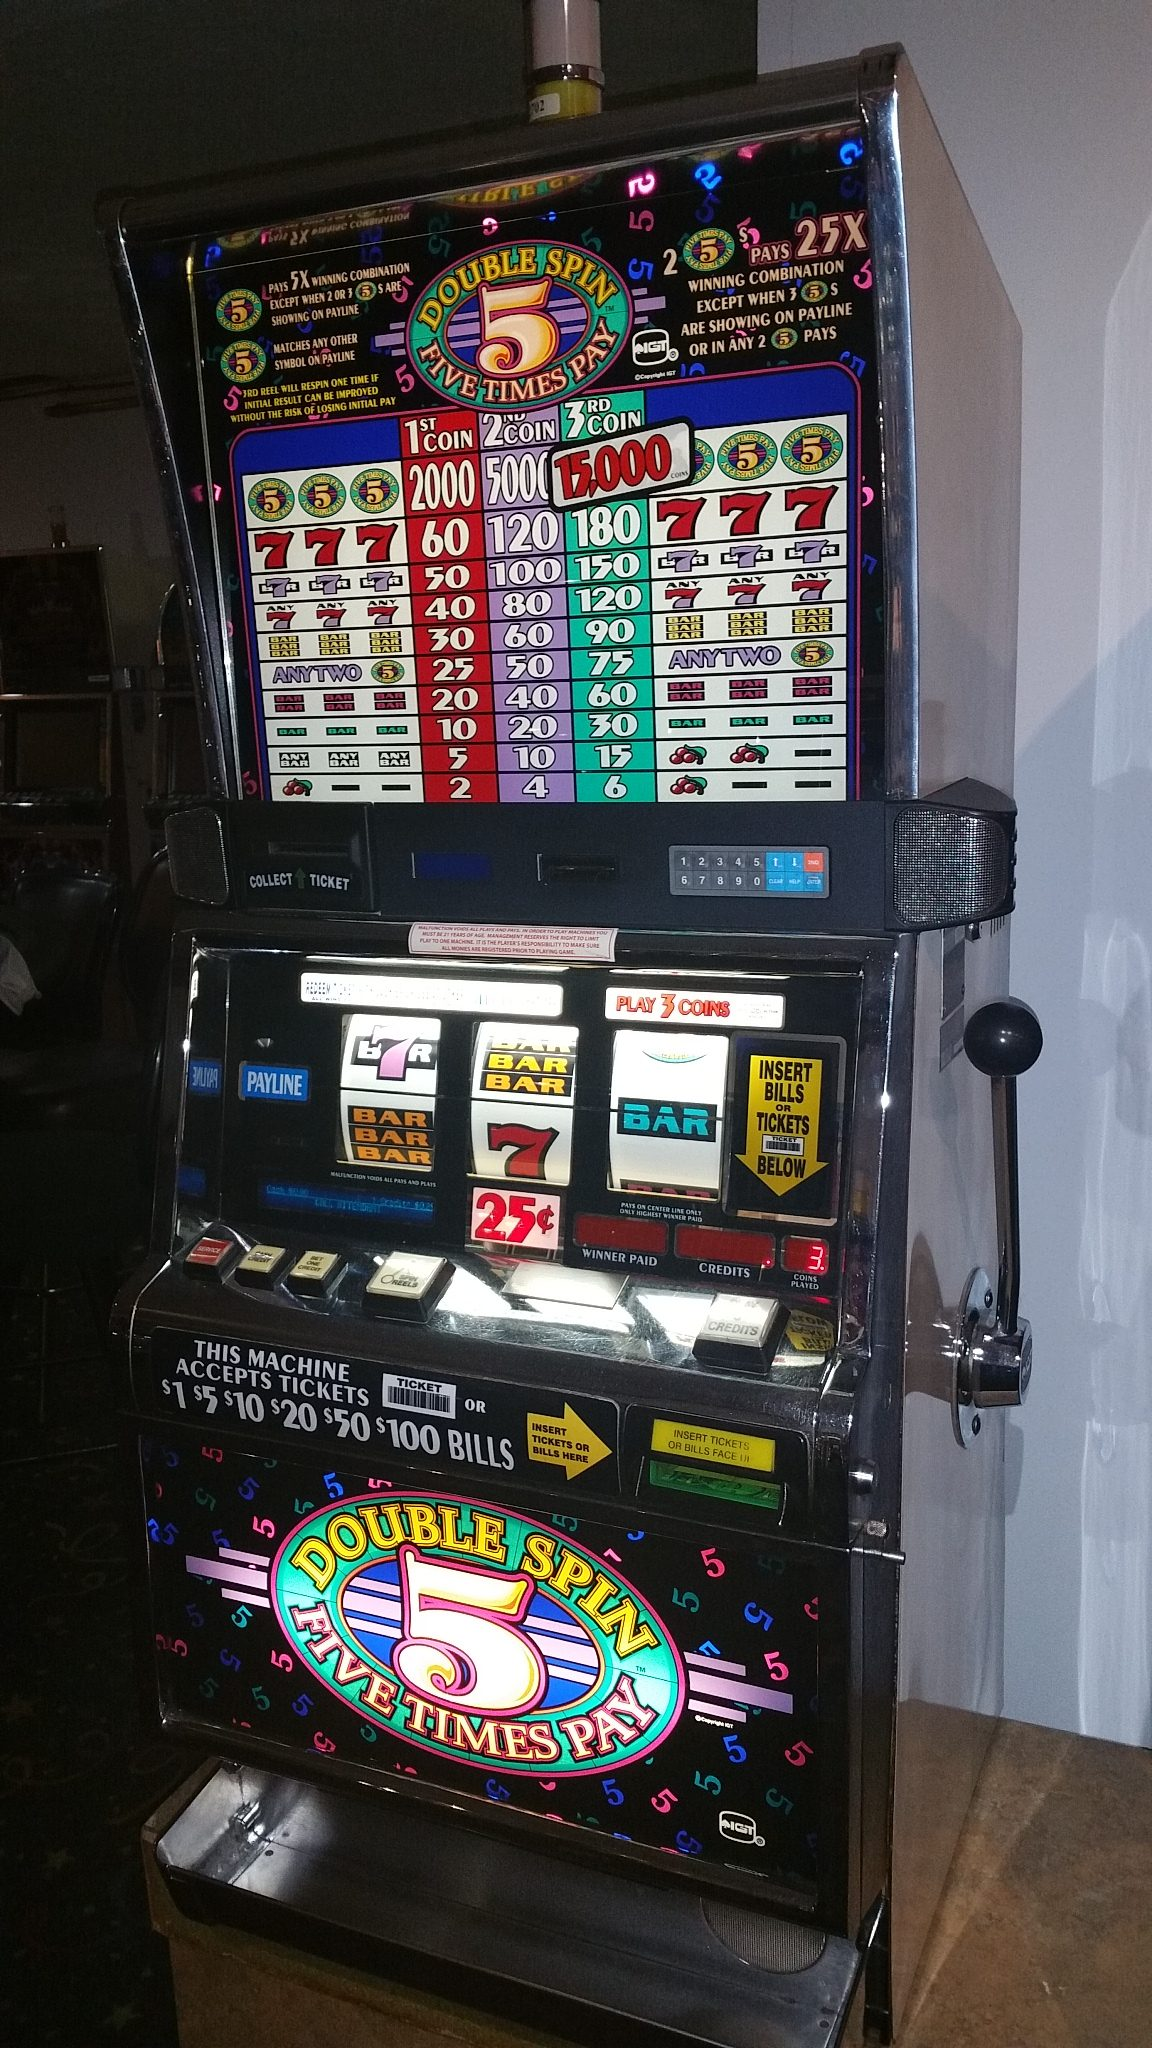 IGT S2000 Five Times Pay Double Spin Slot Machine